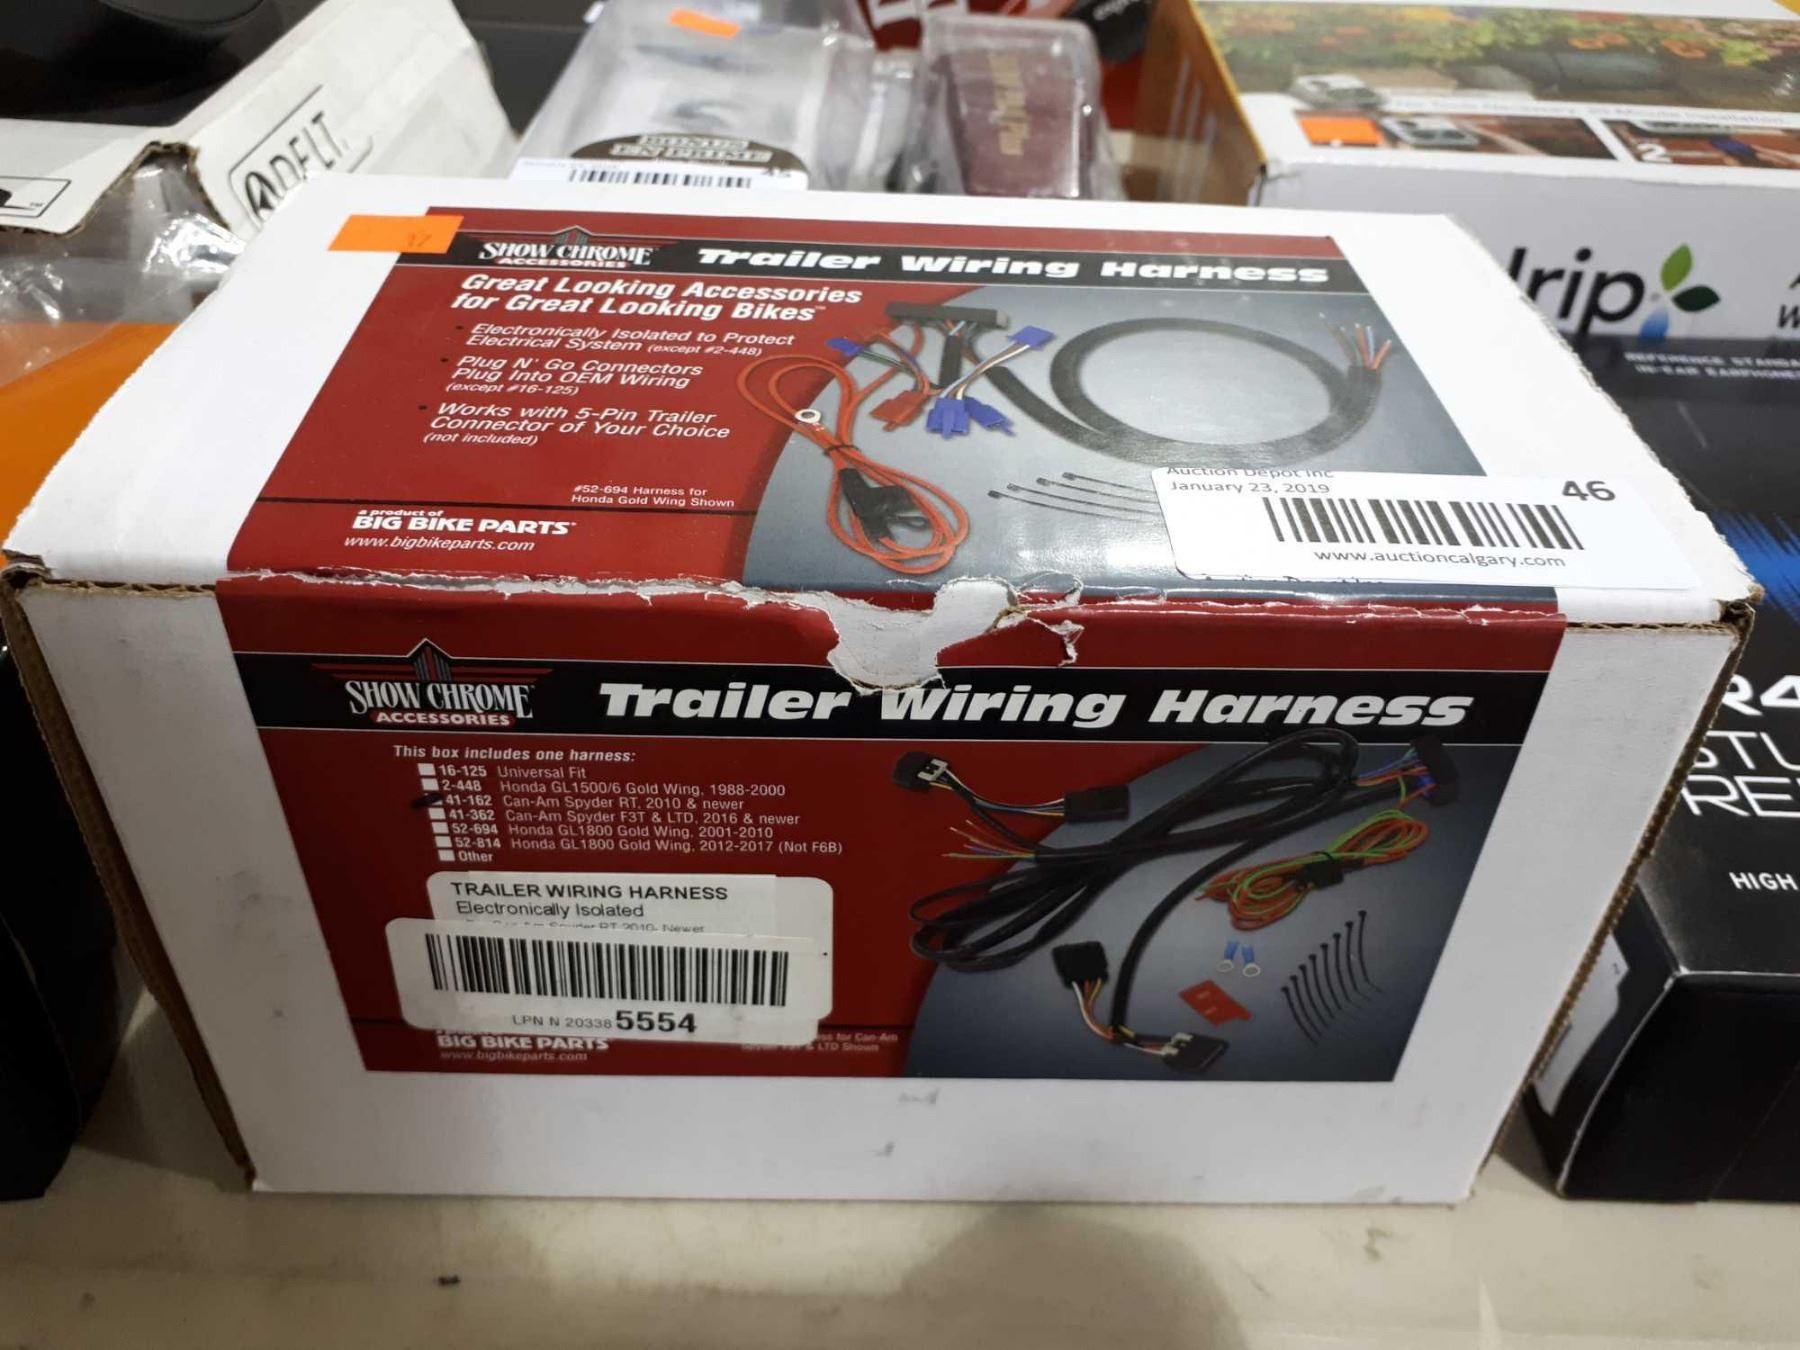 hight resolution of image 1 show chrome trailer wiring harness